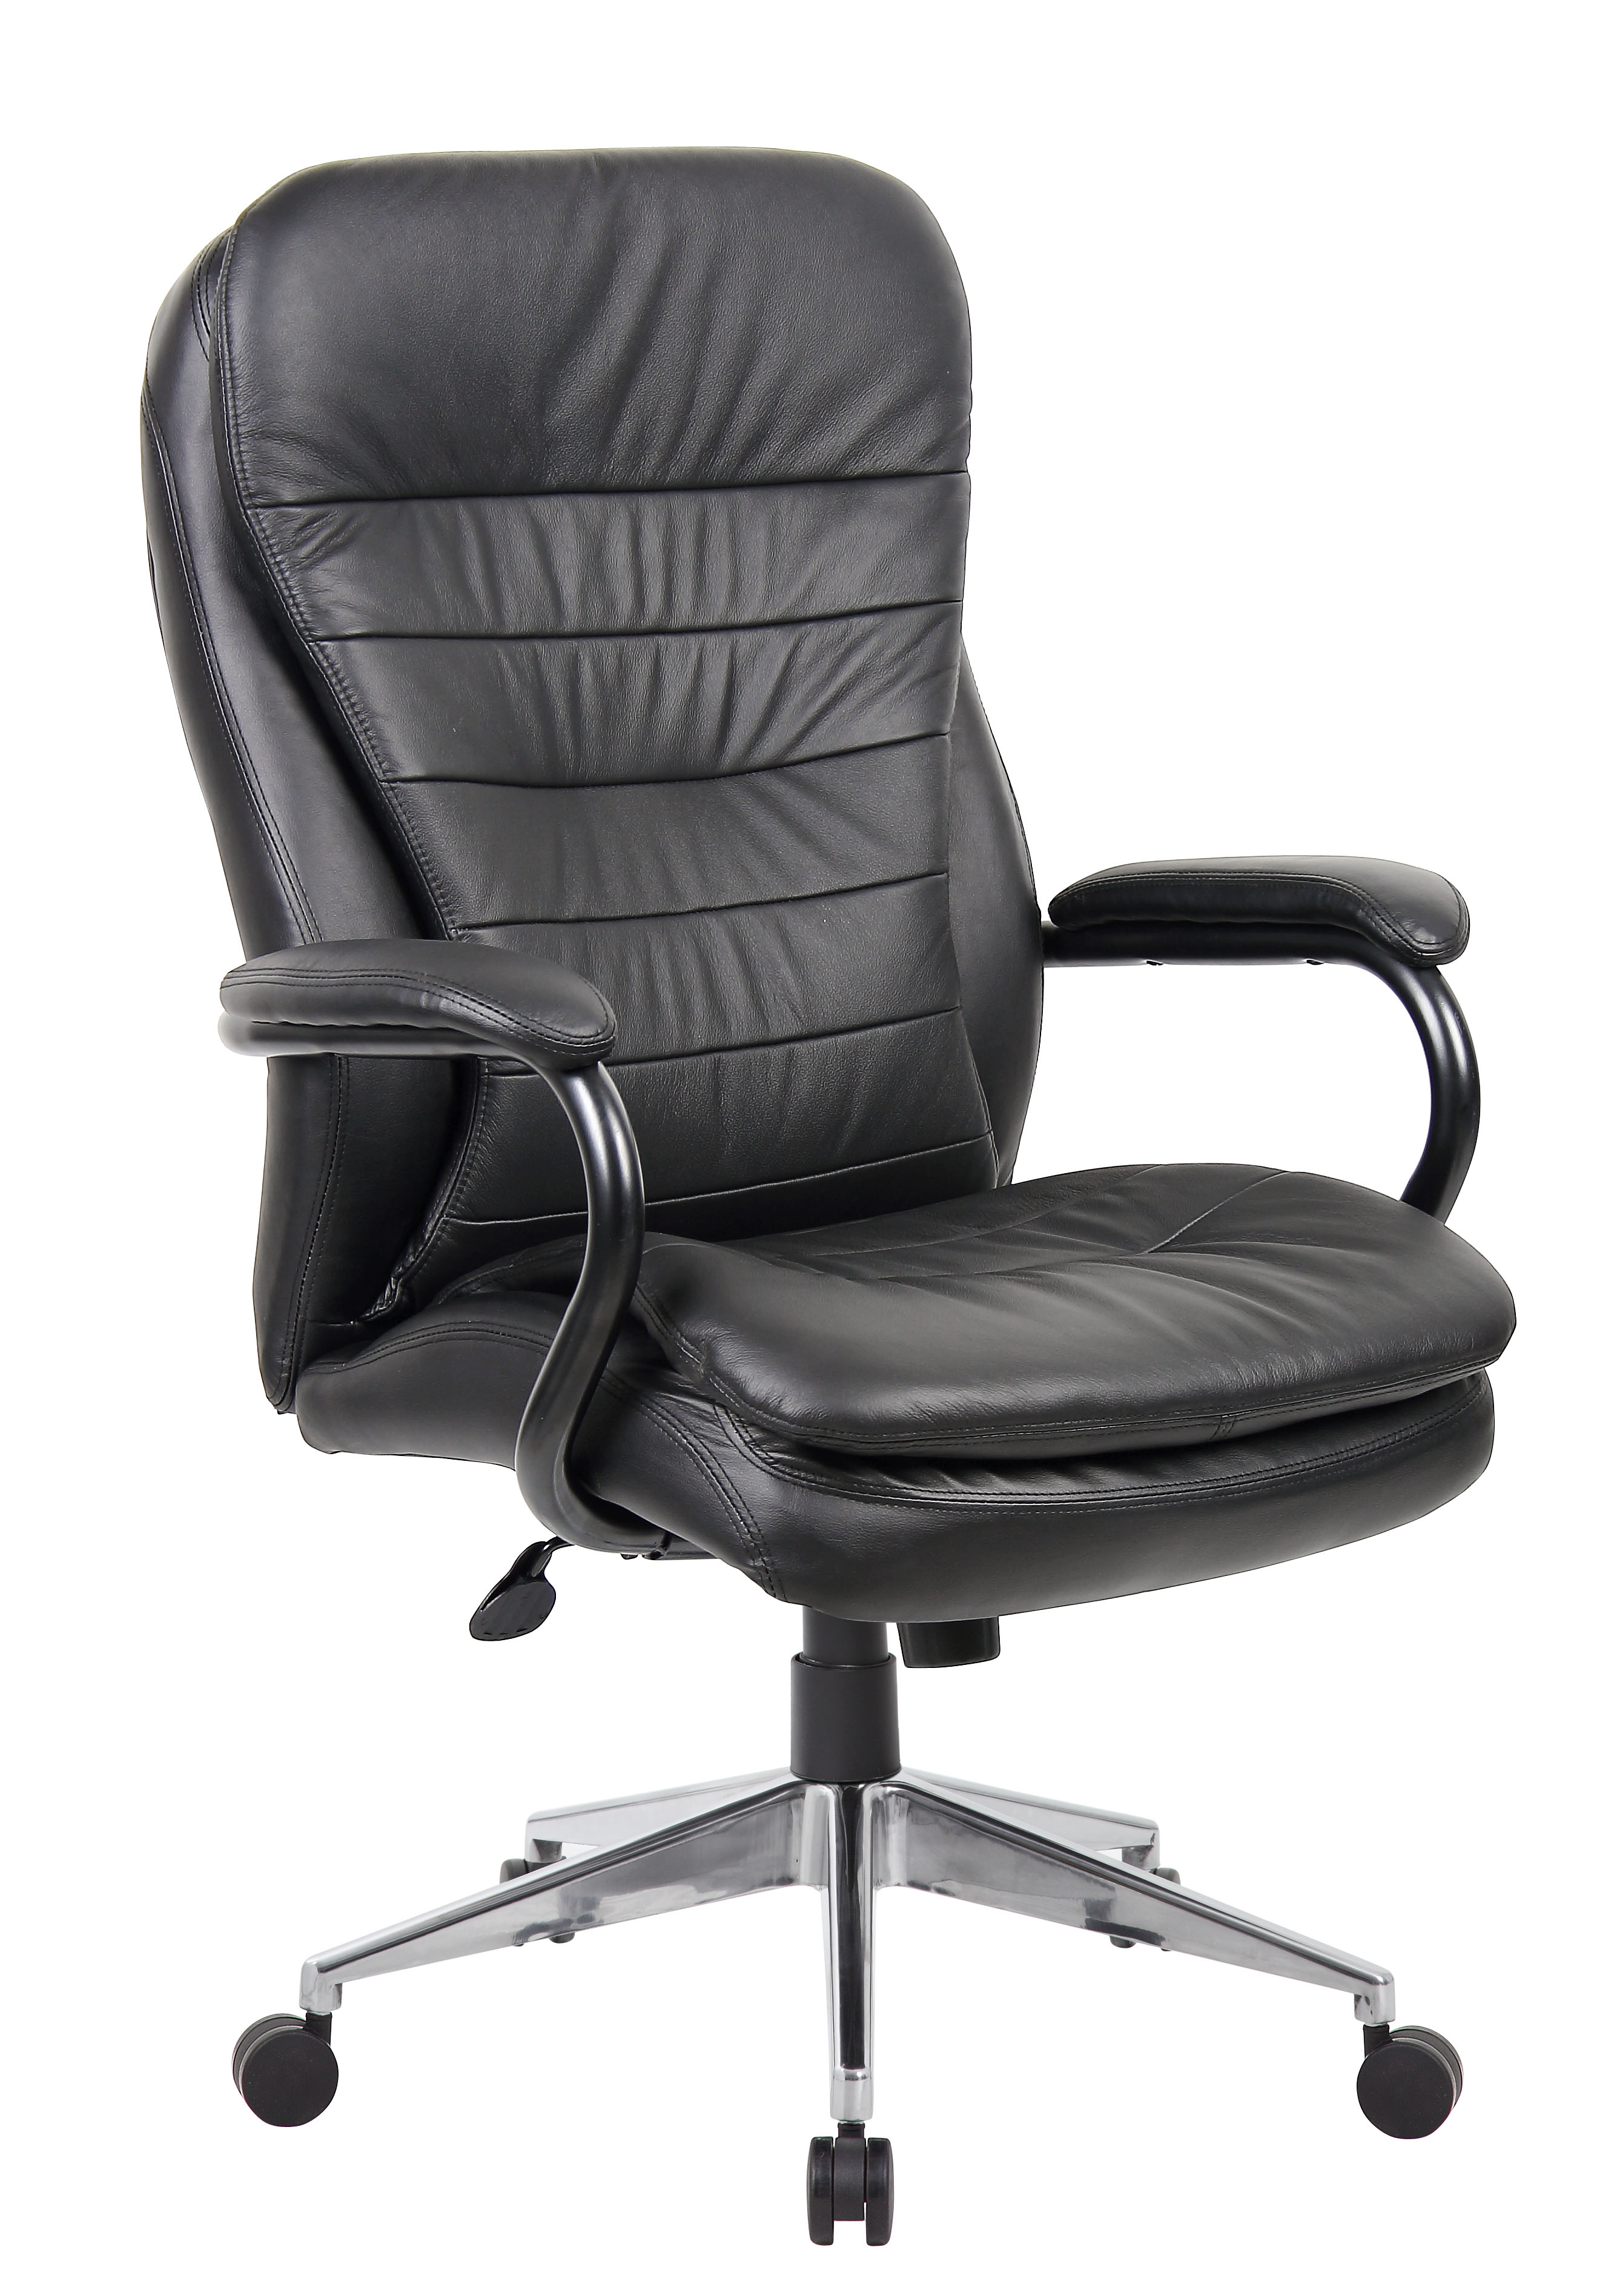 back support for office chairs australia tall kitchen ys05h titan high black h duty chair direct qld